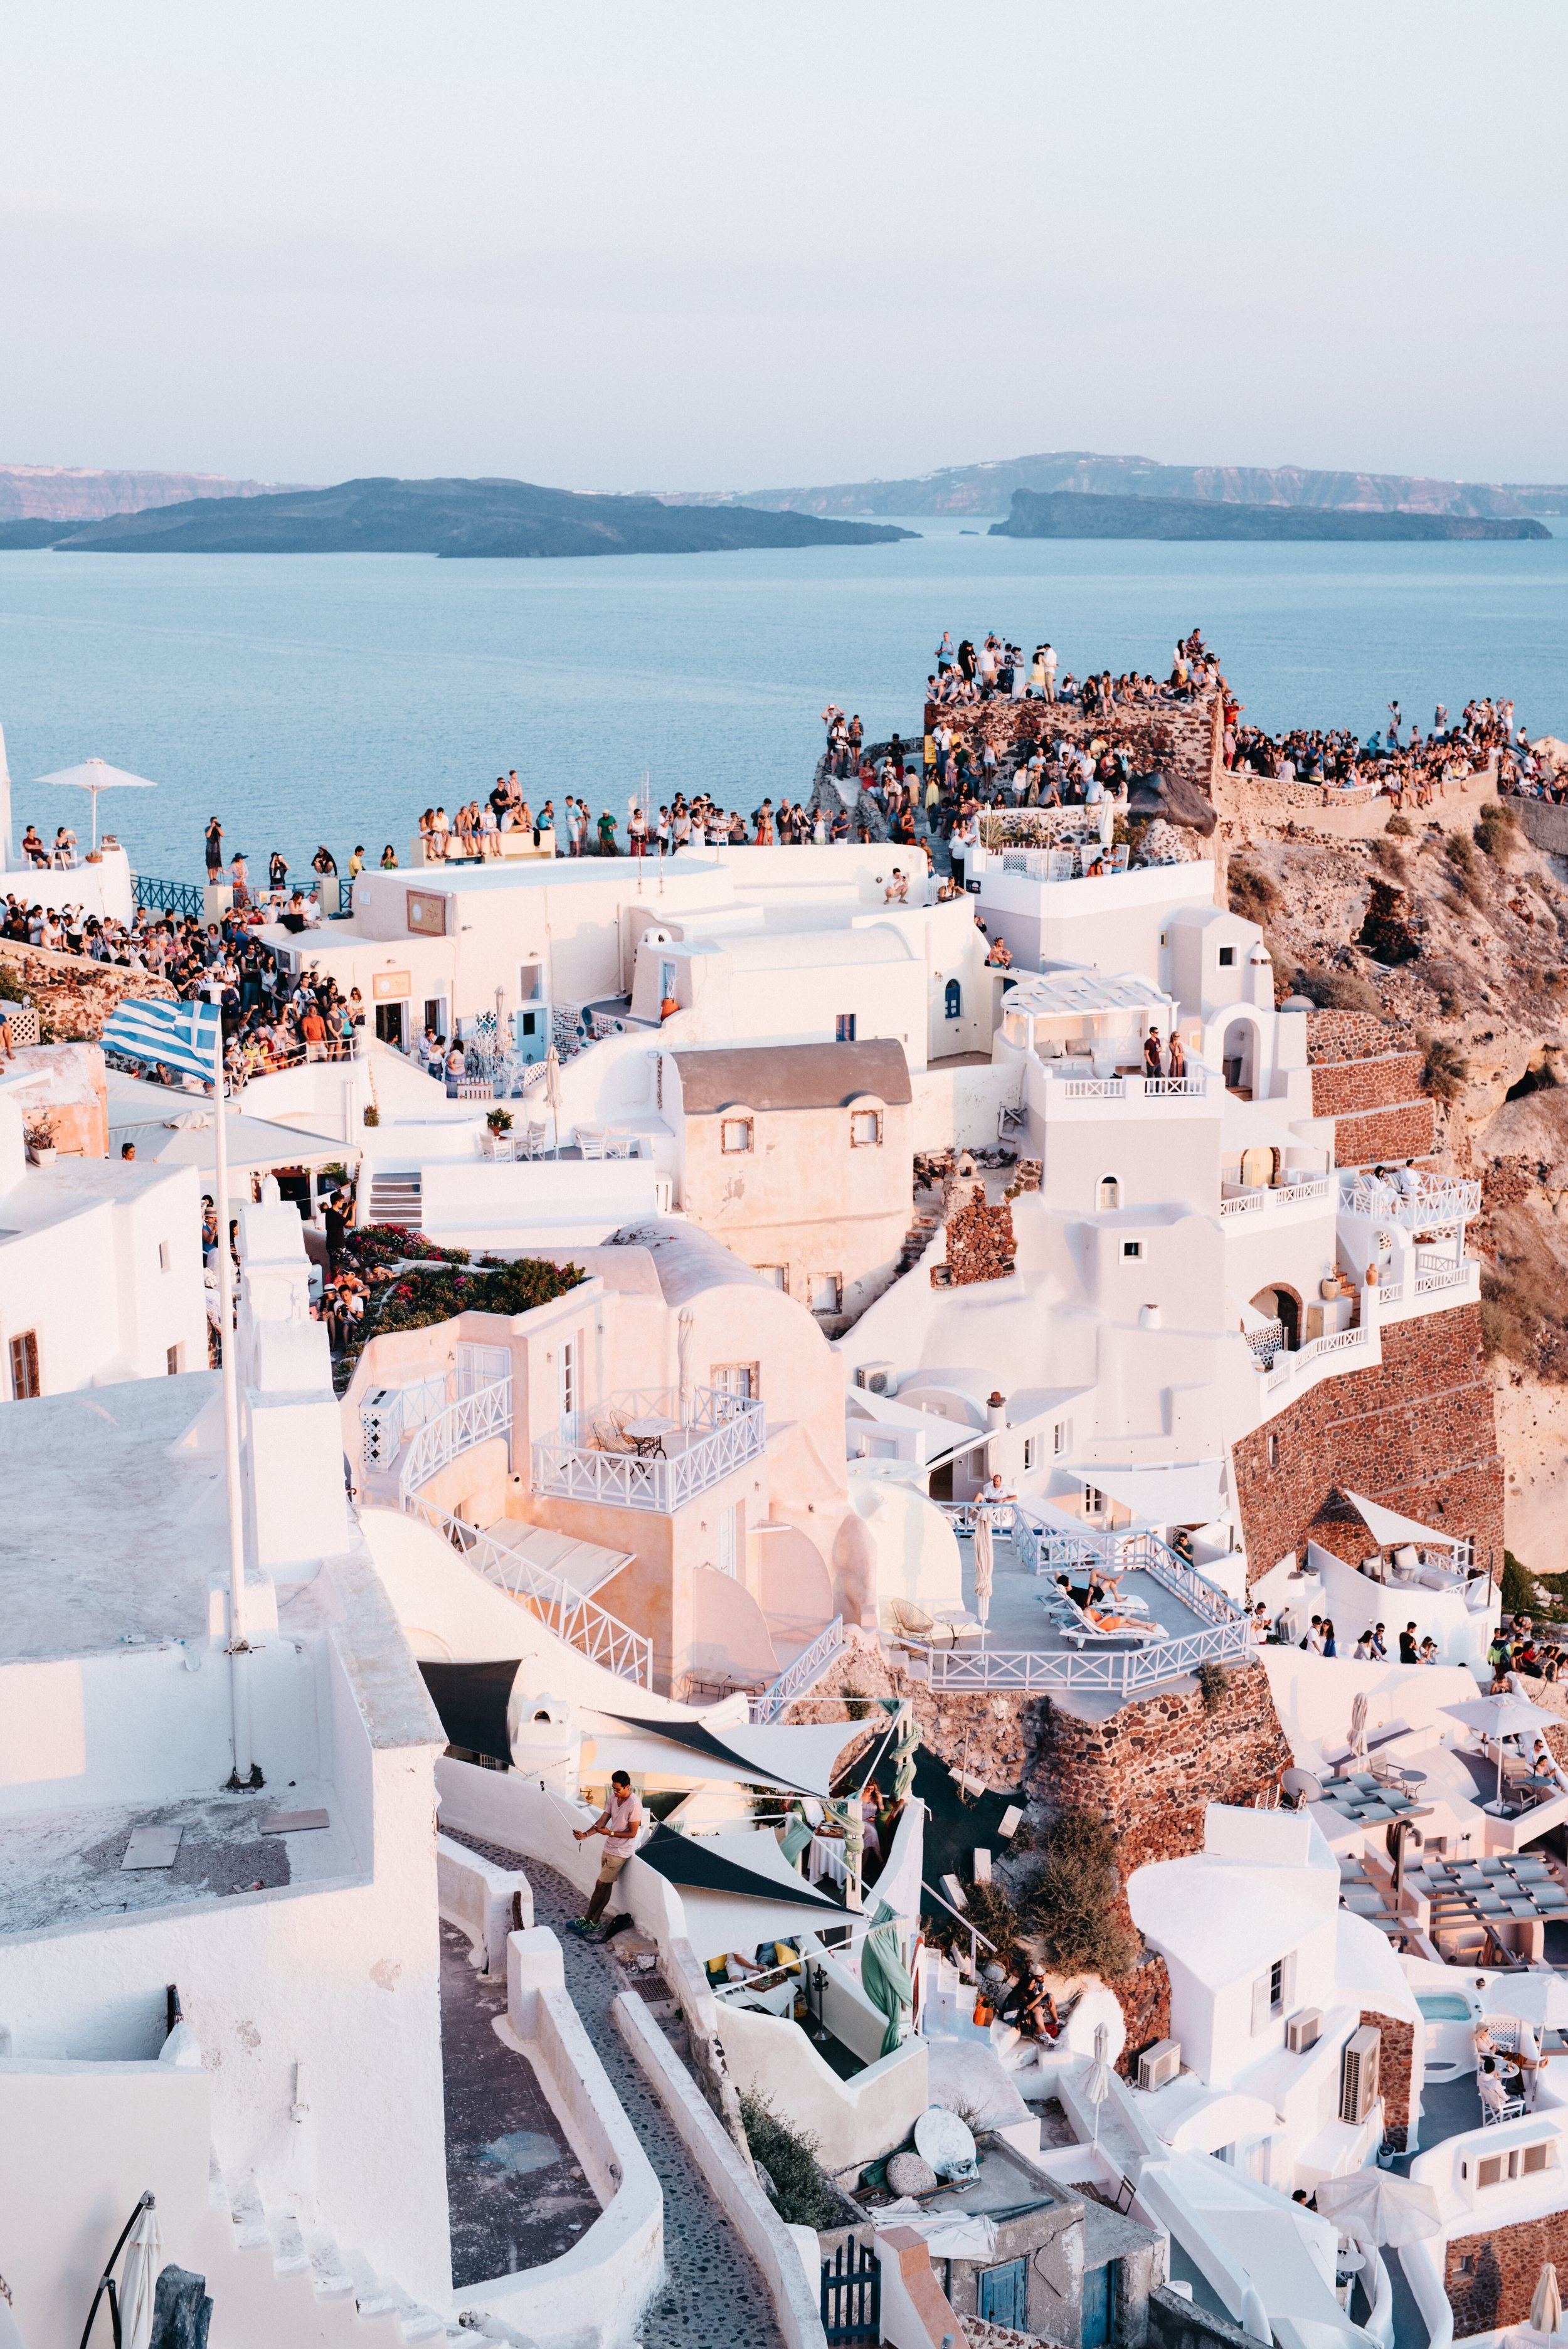 Popular sunset views at Oia